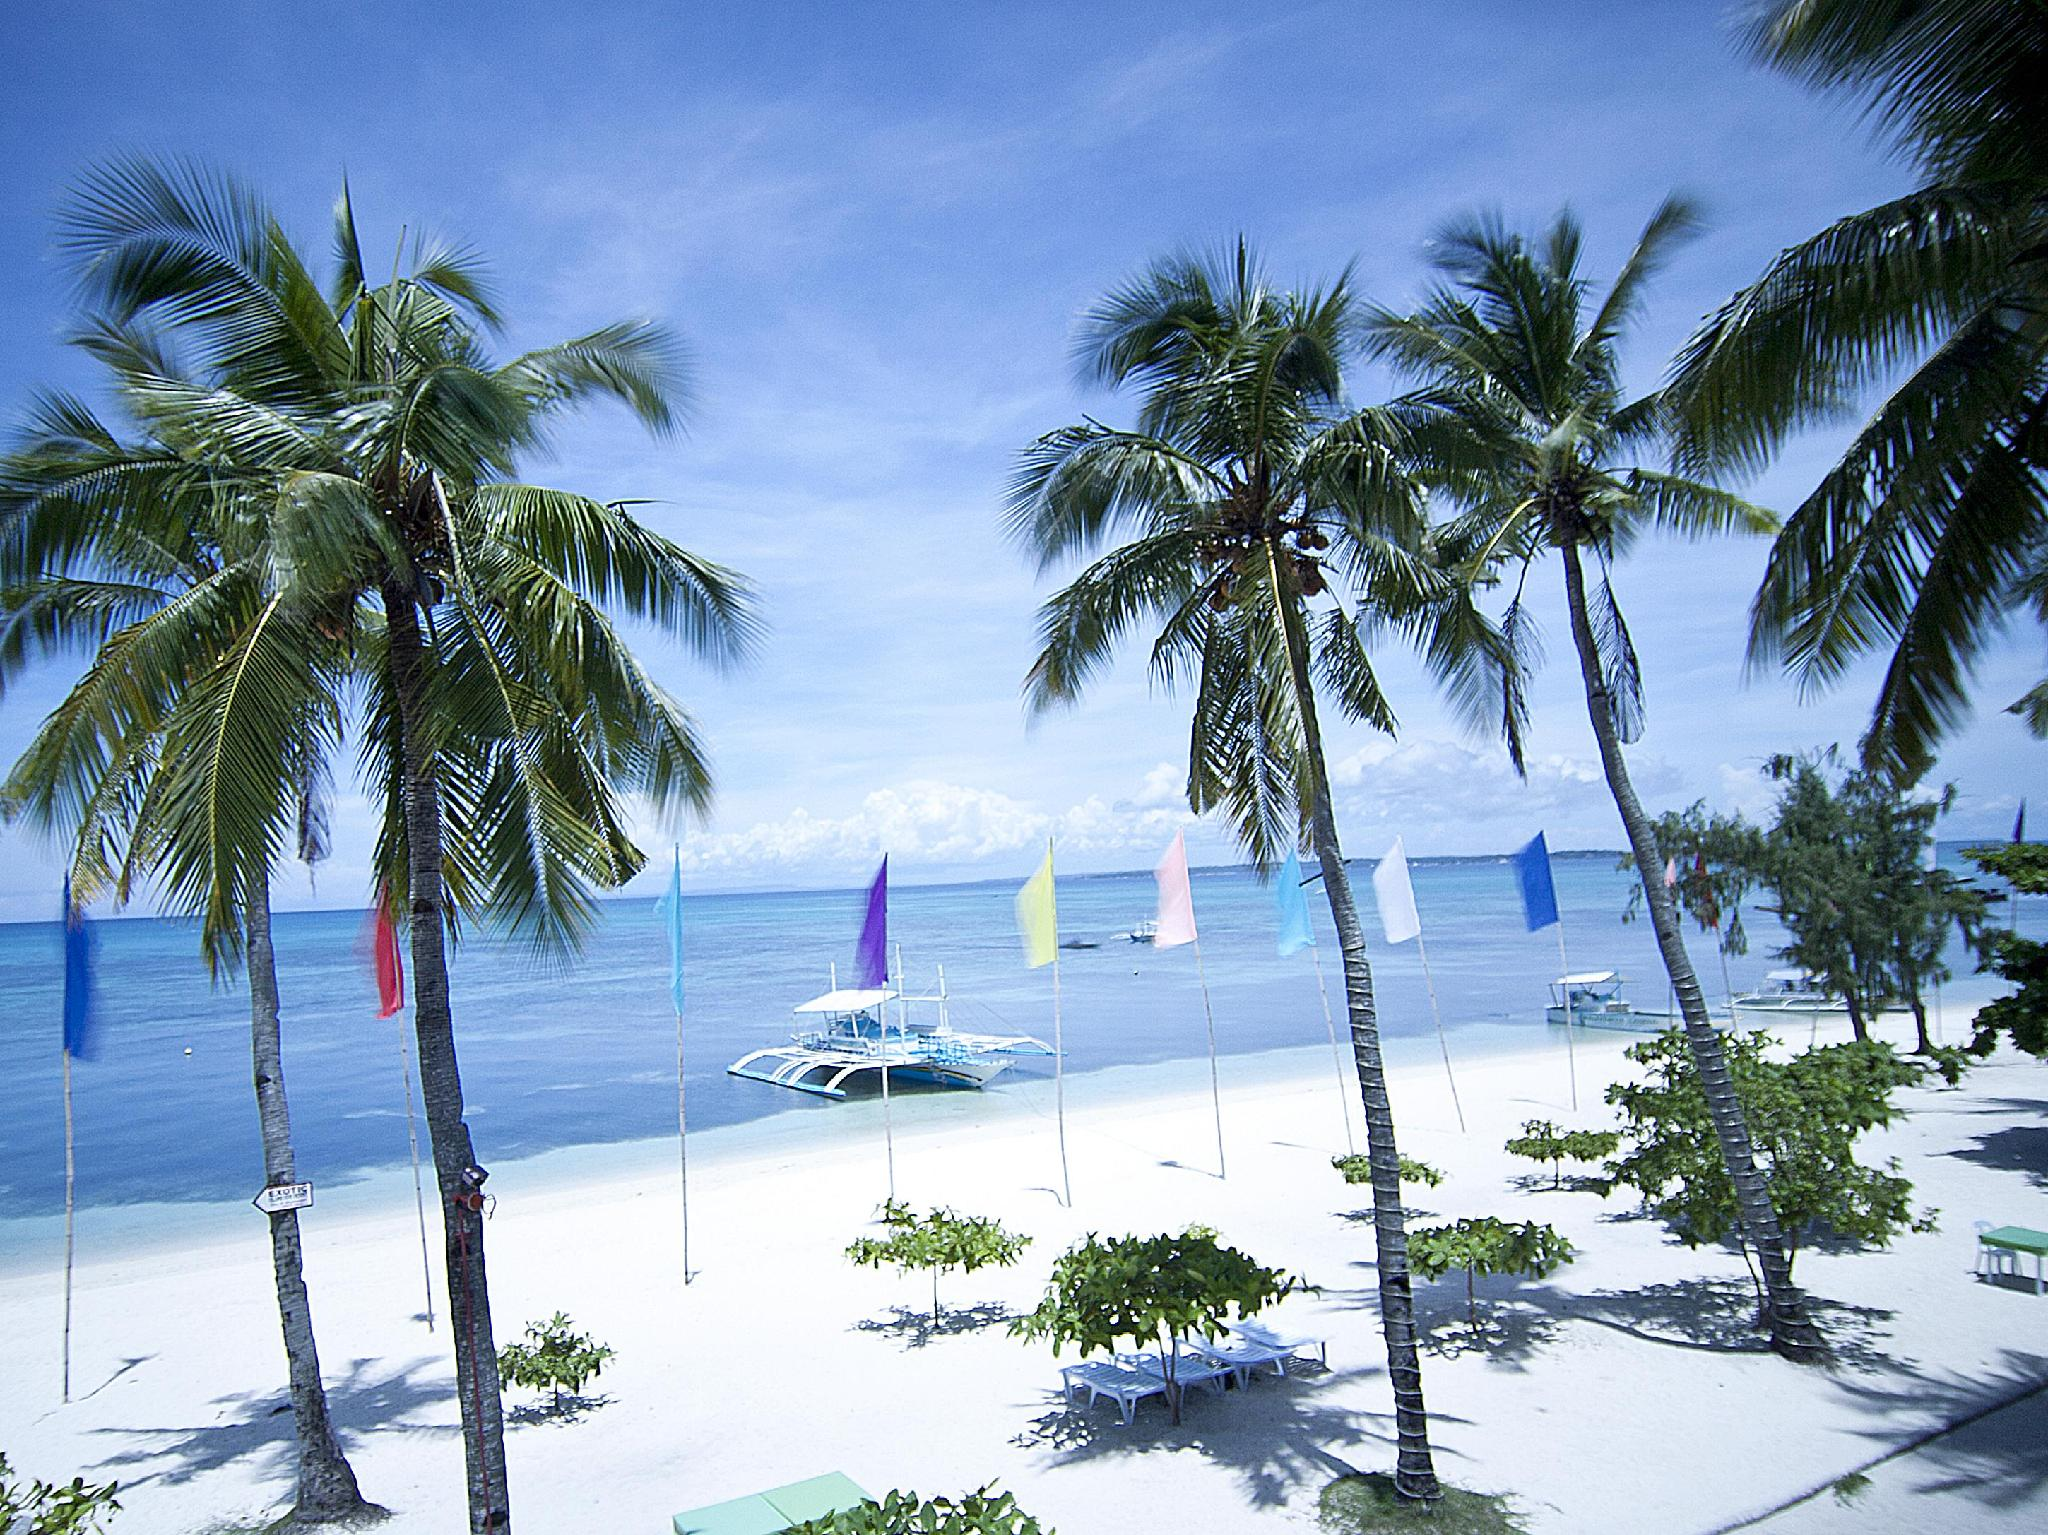 Malapascua Legend Water Sports and Resort Cebu